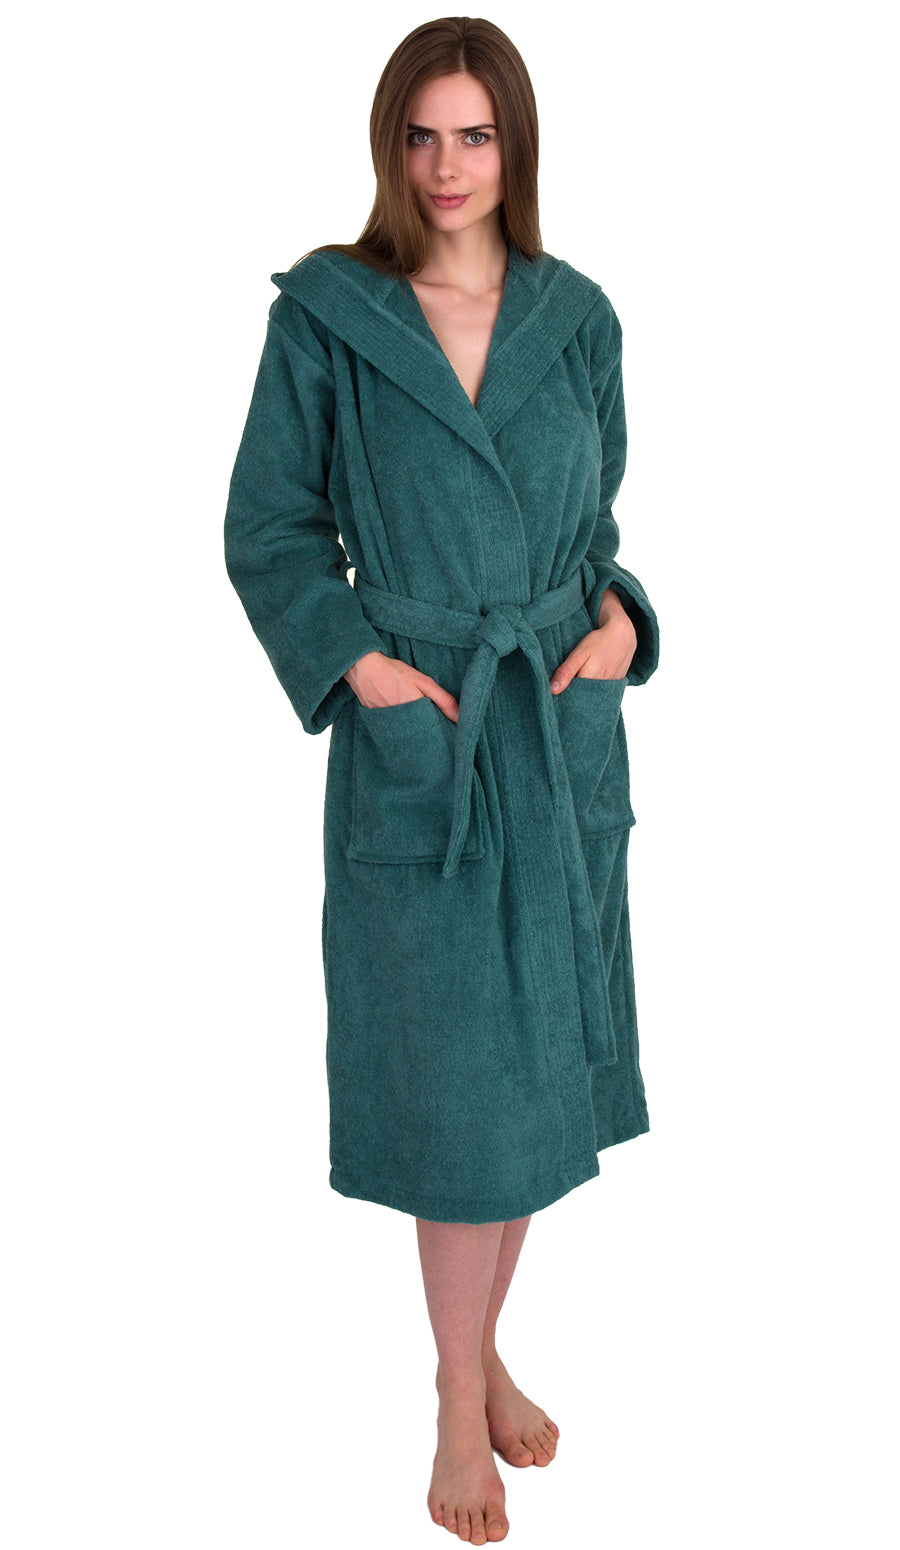 8efa6a61ad Women s Terry Bathrobes - TowelSelections